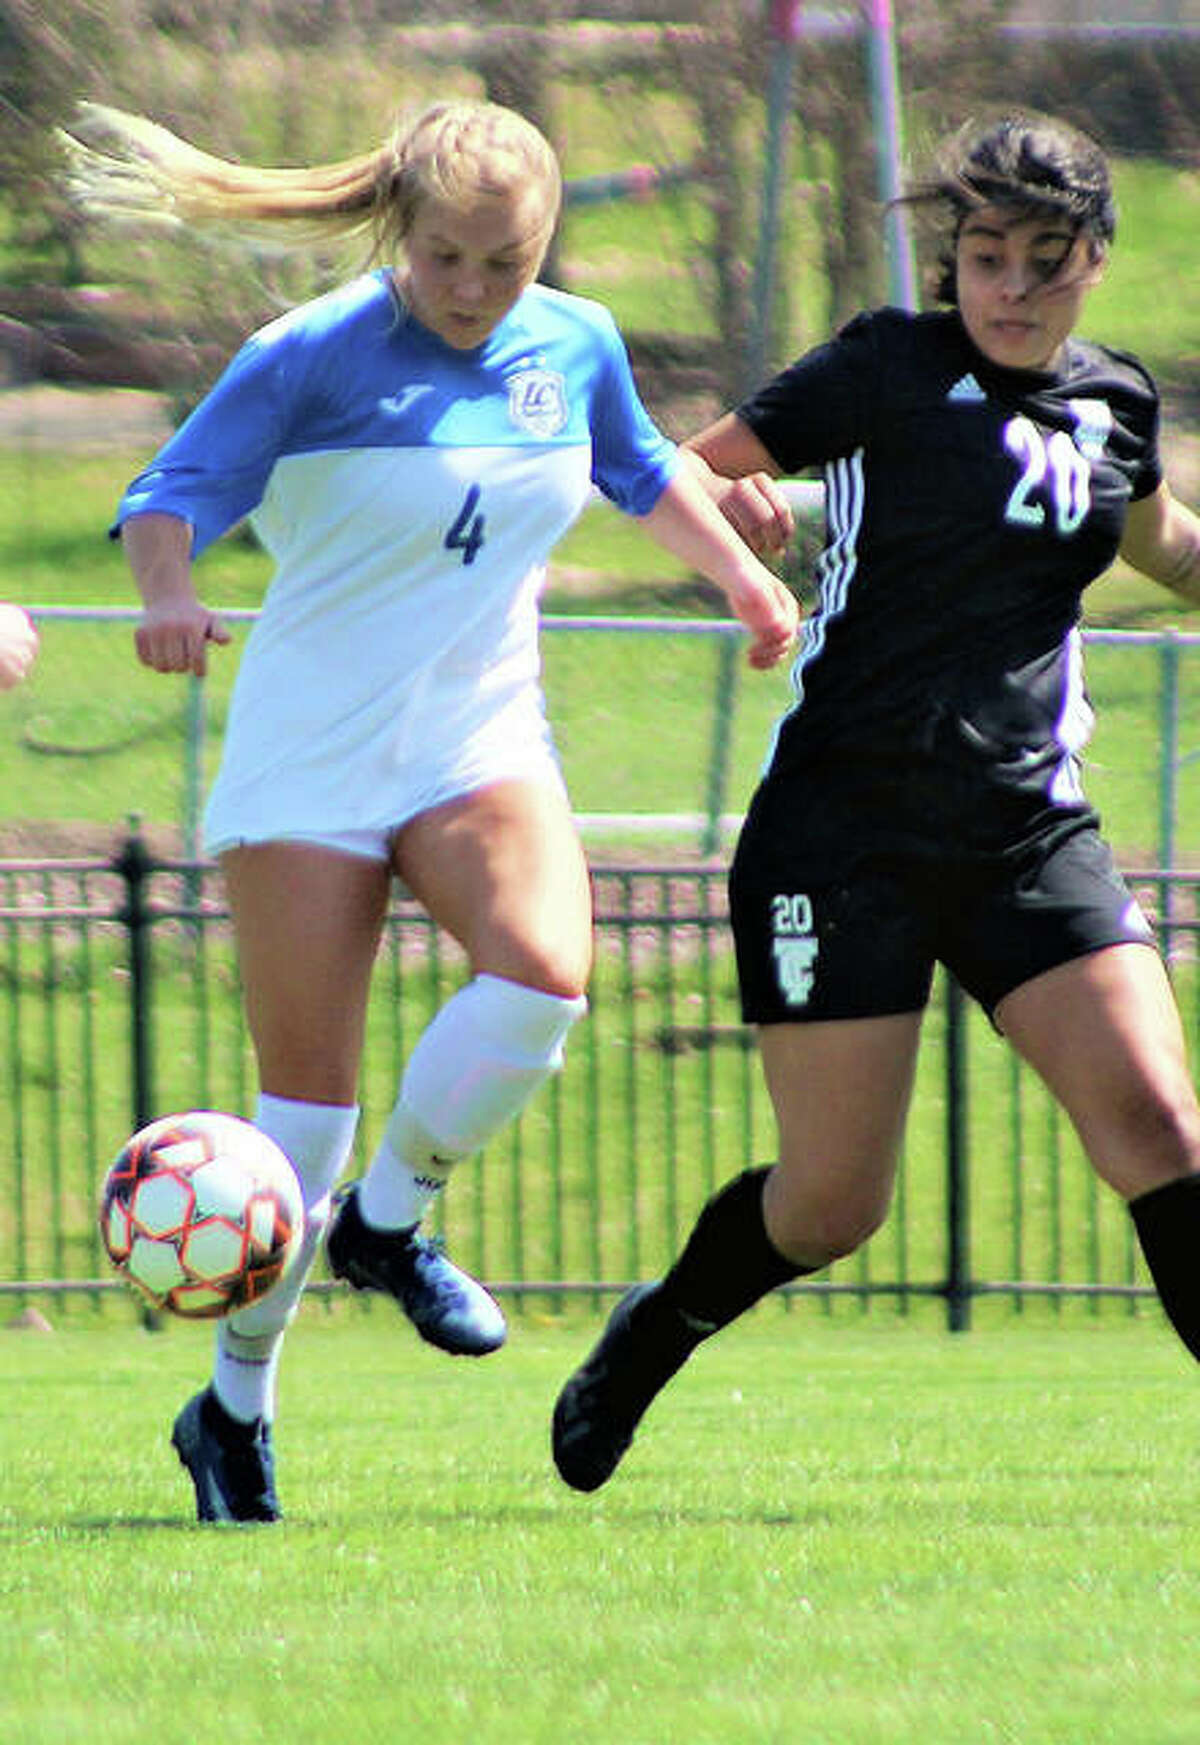 LCCC's Skylar Hollingshead (4) scored all three goals for the Trailblazers in Tuesday's 3-0 victory over Wabash Valley College in Mount Carmel.